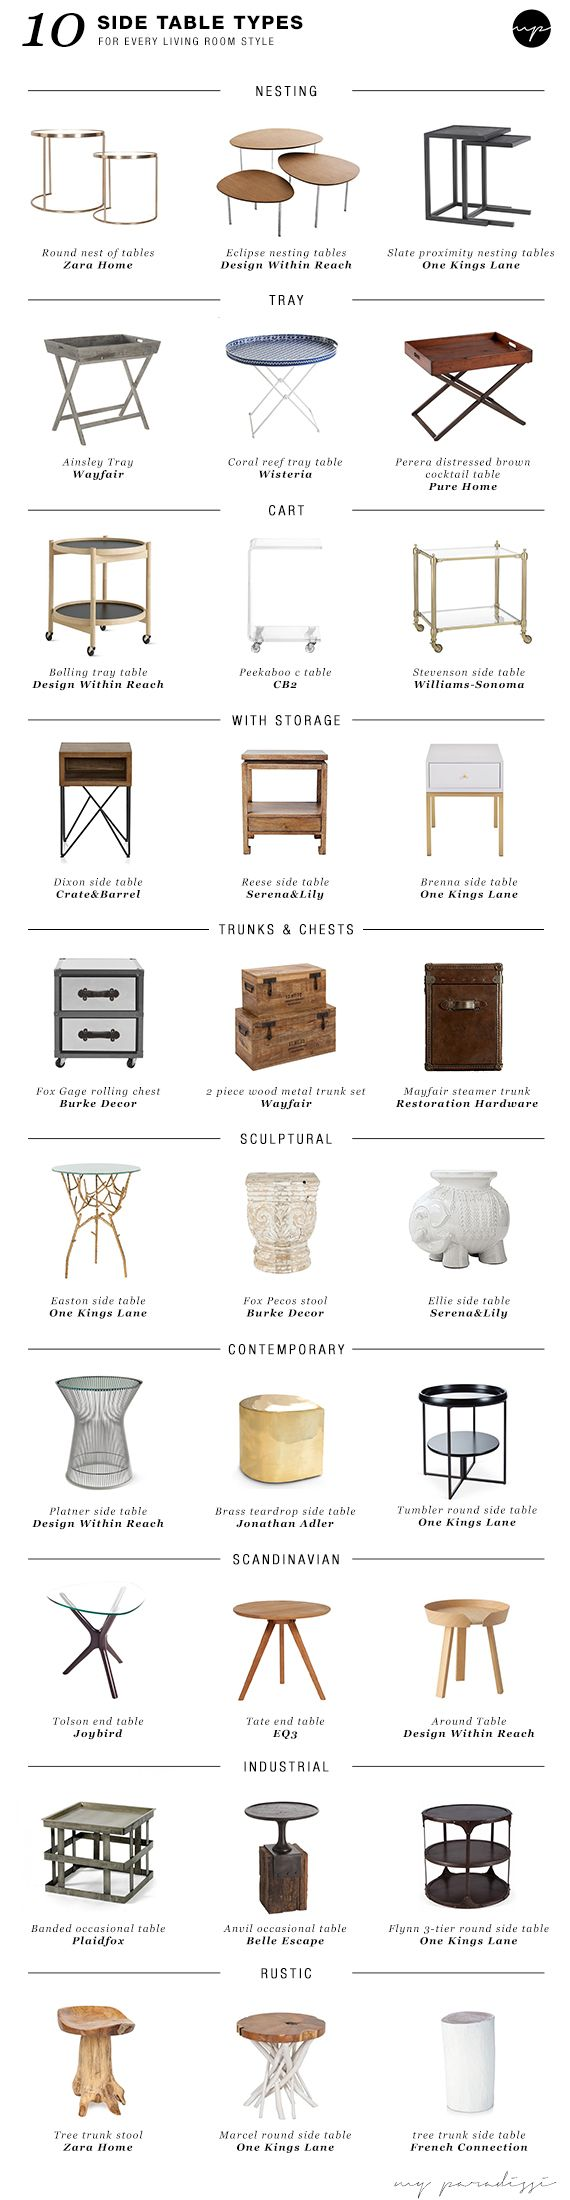 10 side table types for every living room | My Paradissi